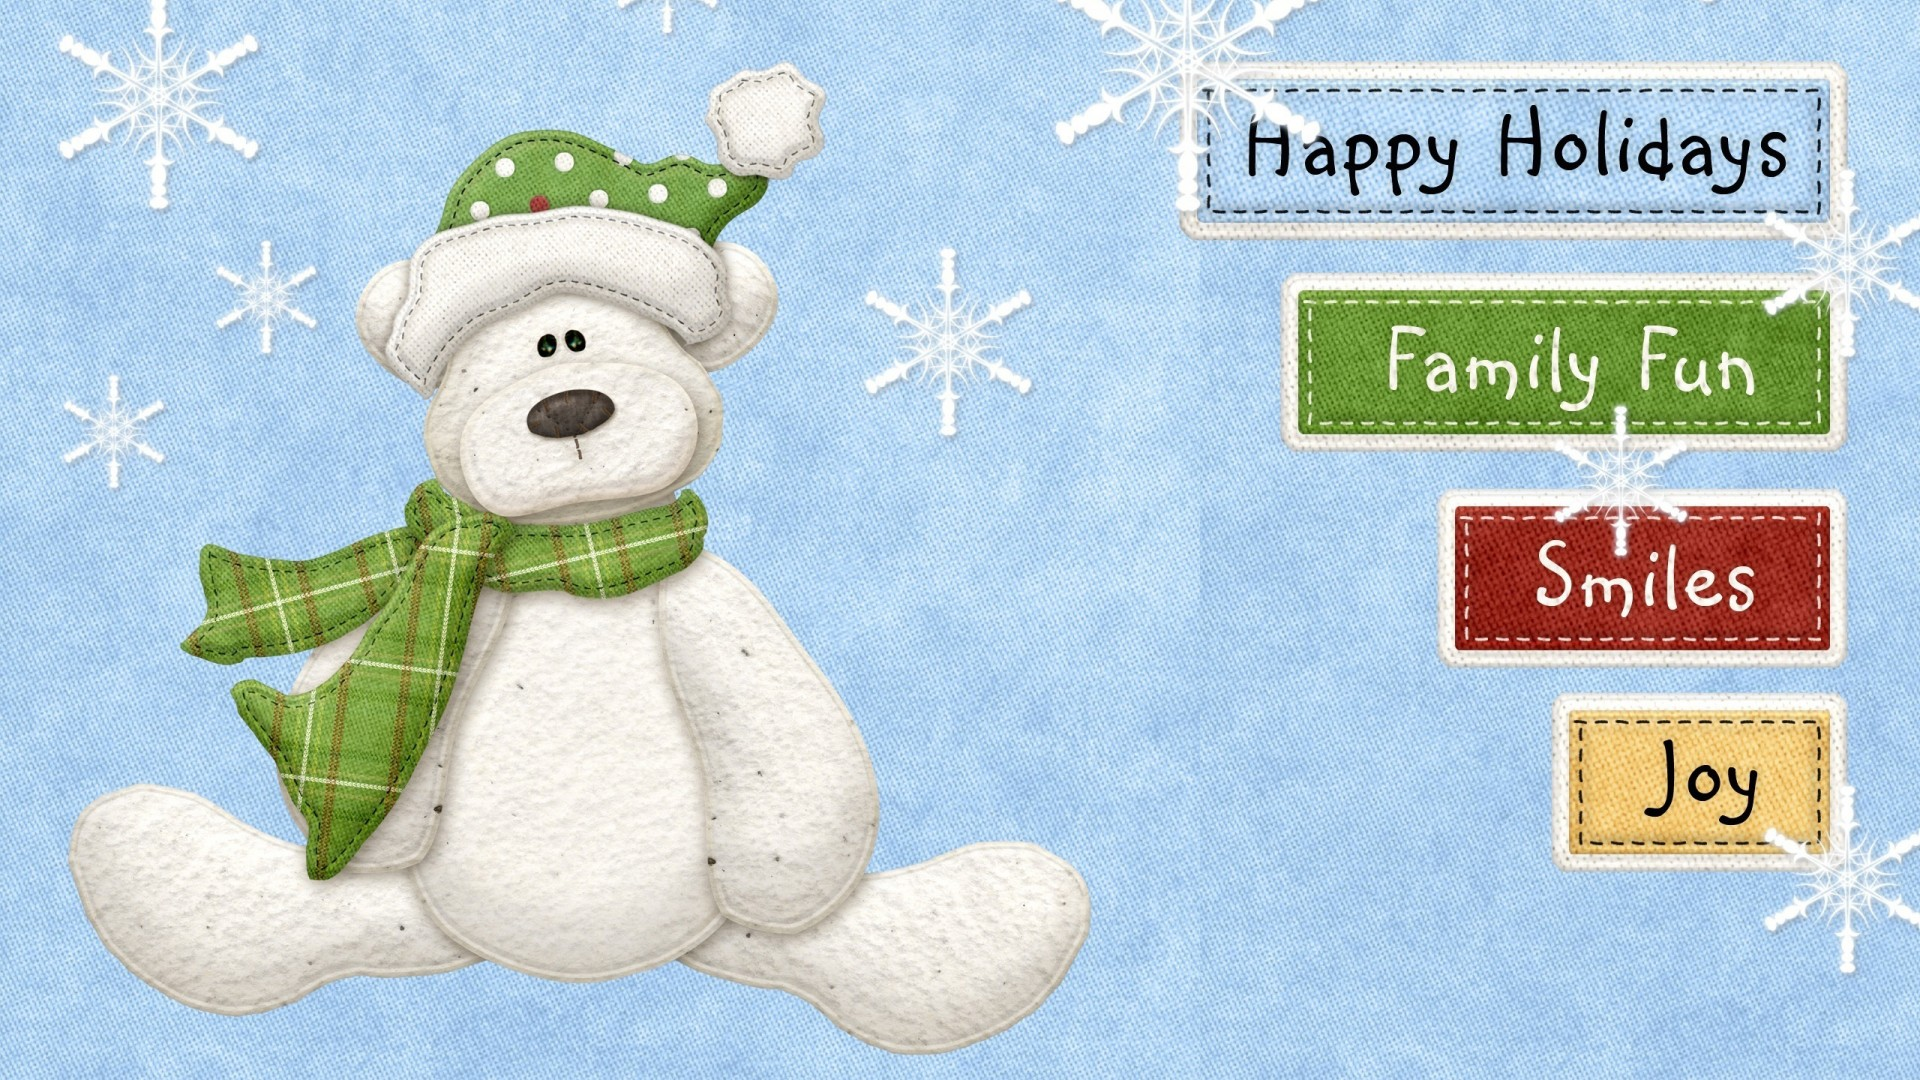 Happy Holidays Fun Joy Wallpapers HD Wallpapers ID 19270